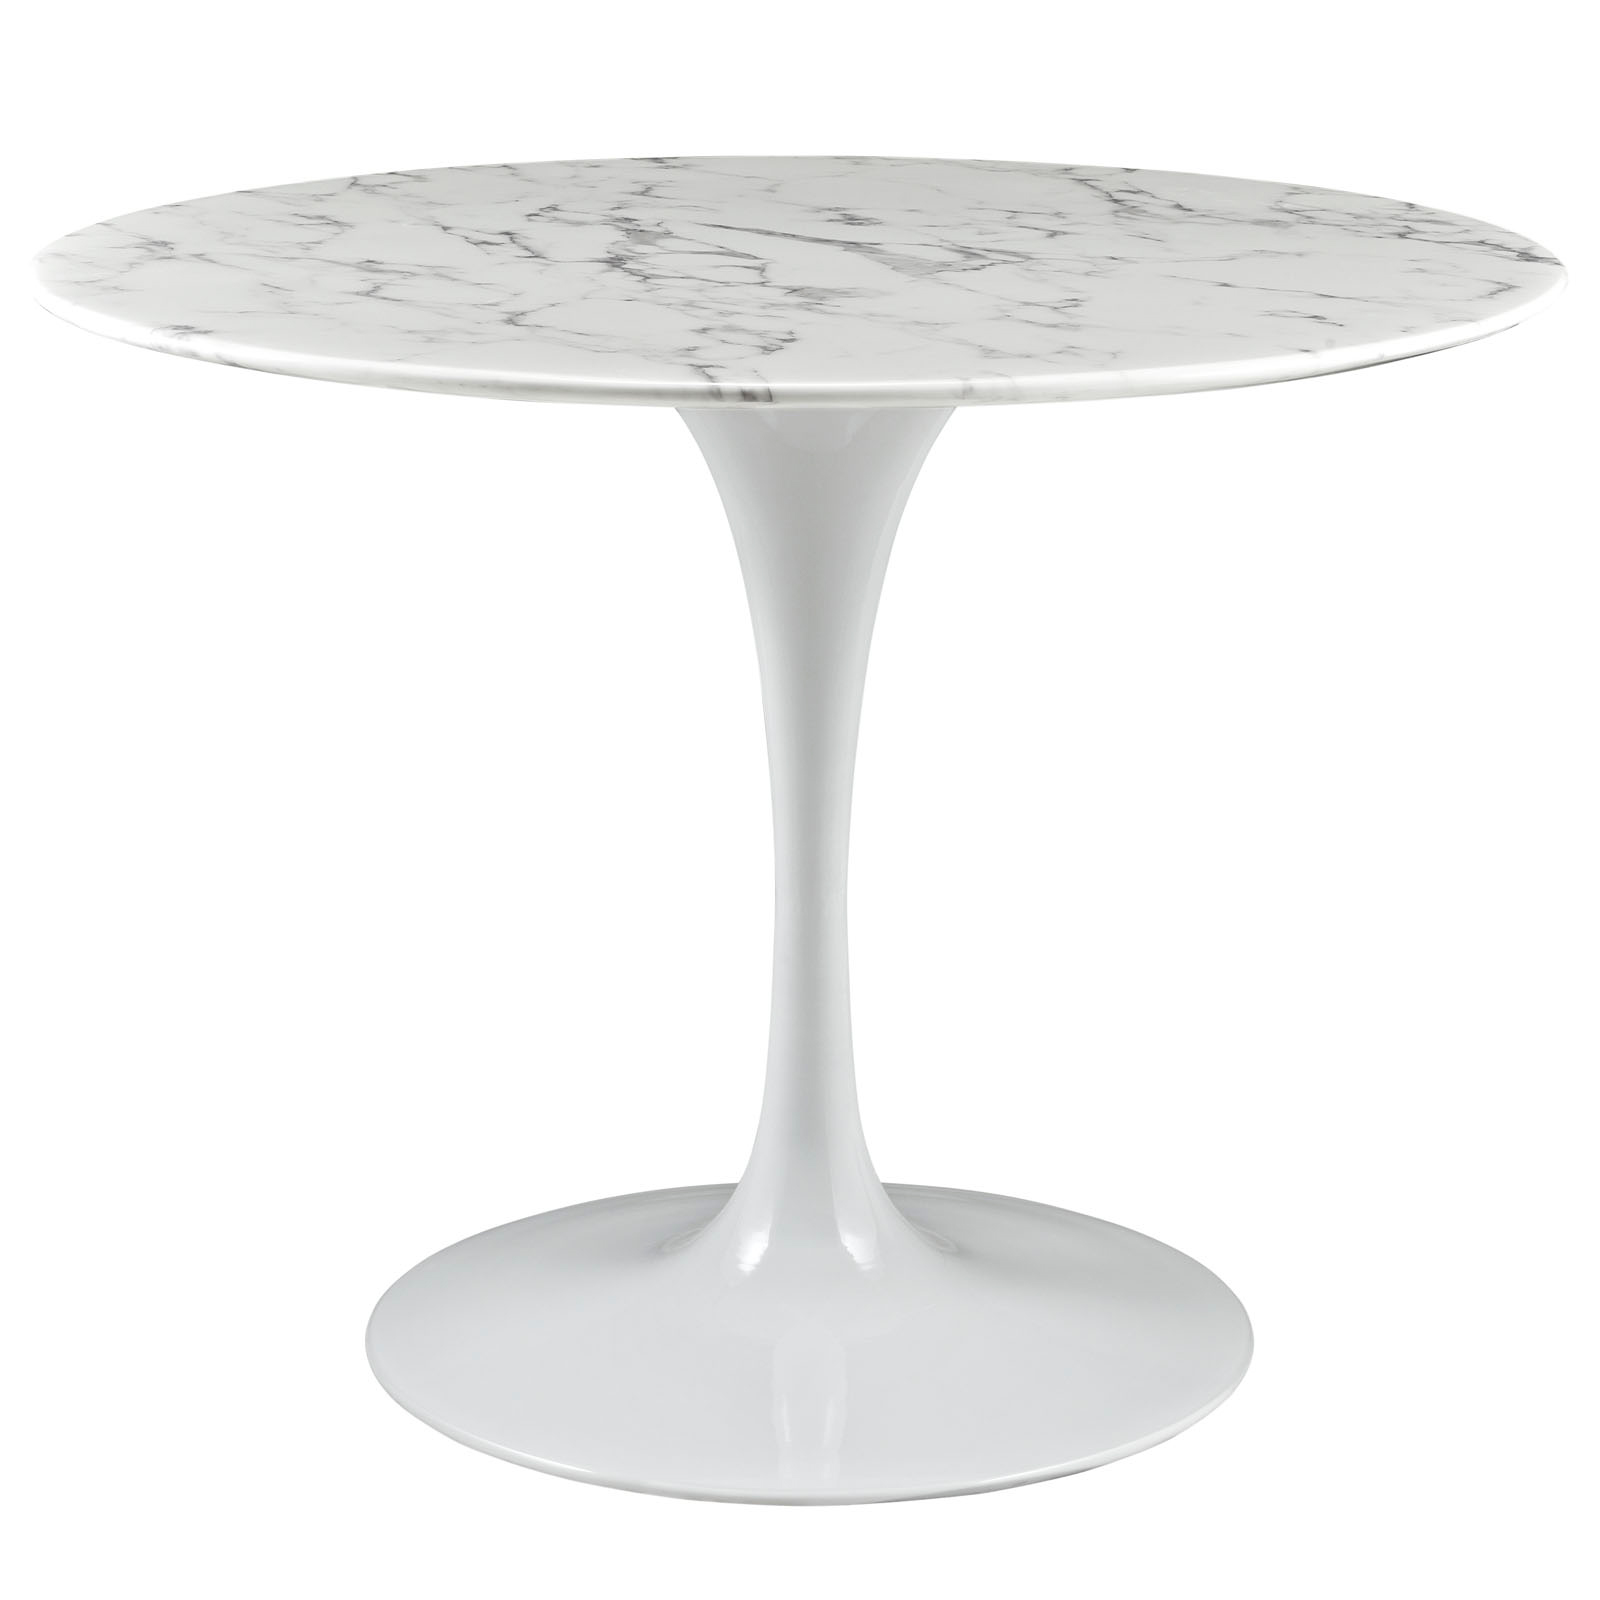 Anabel 40in Artificial Marble Dining Table1